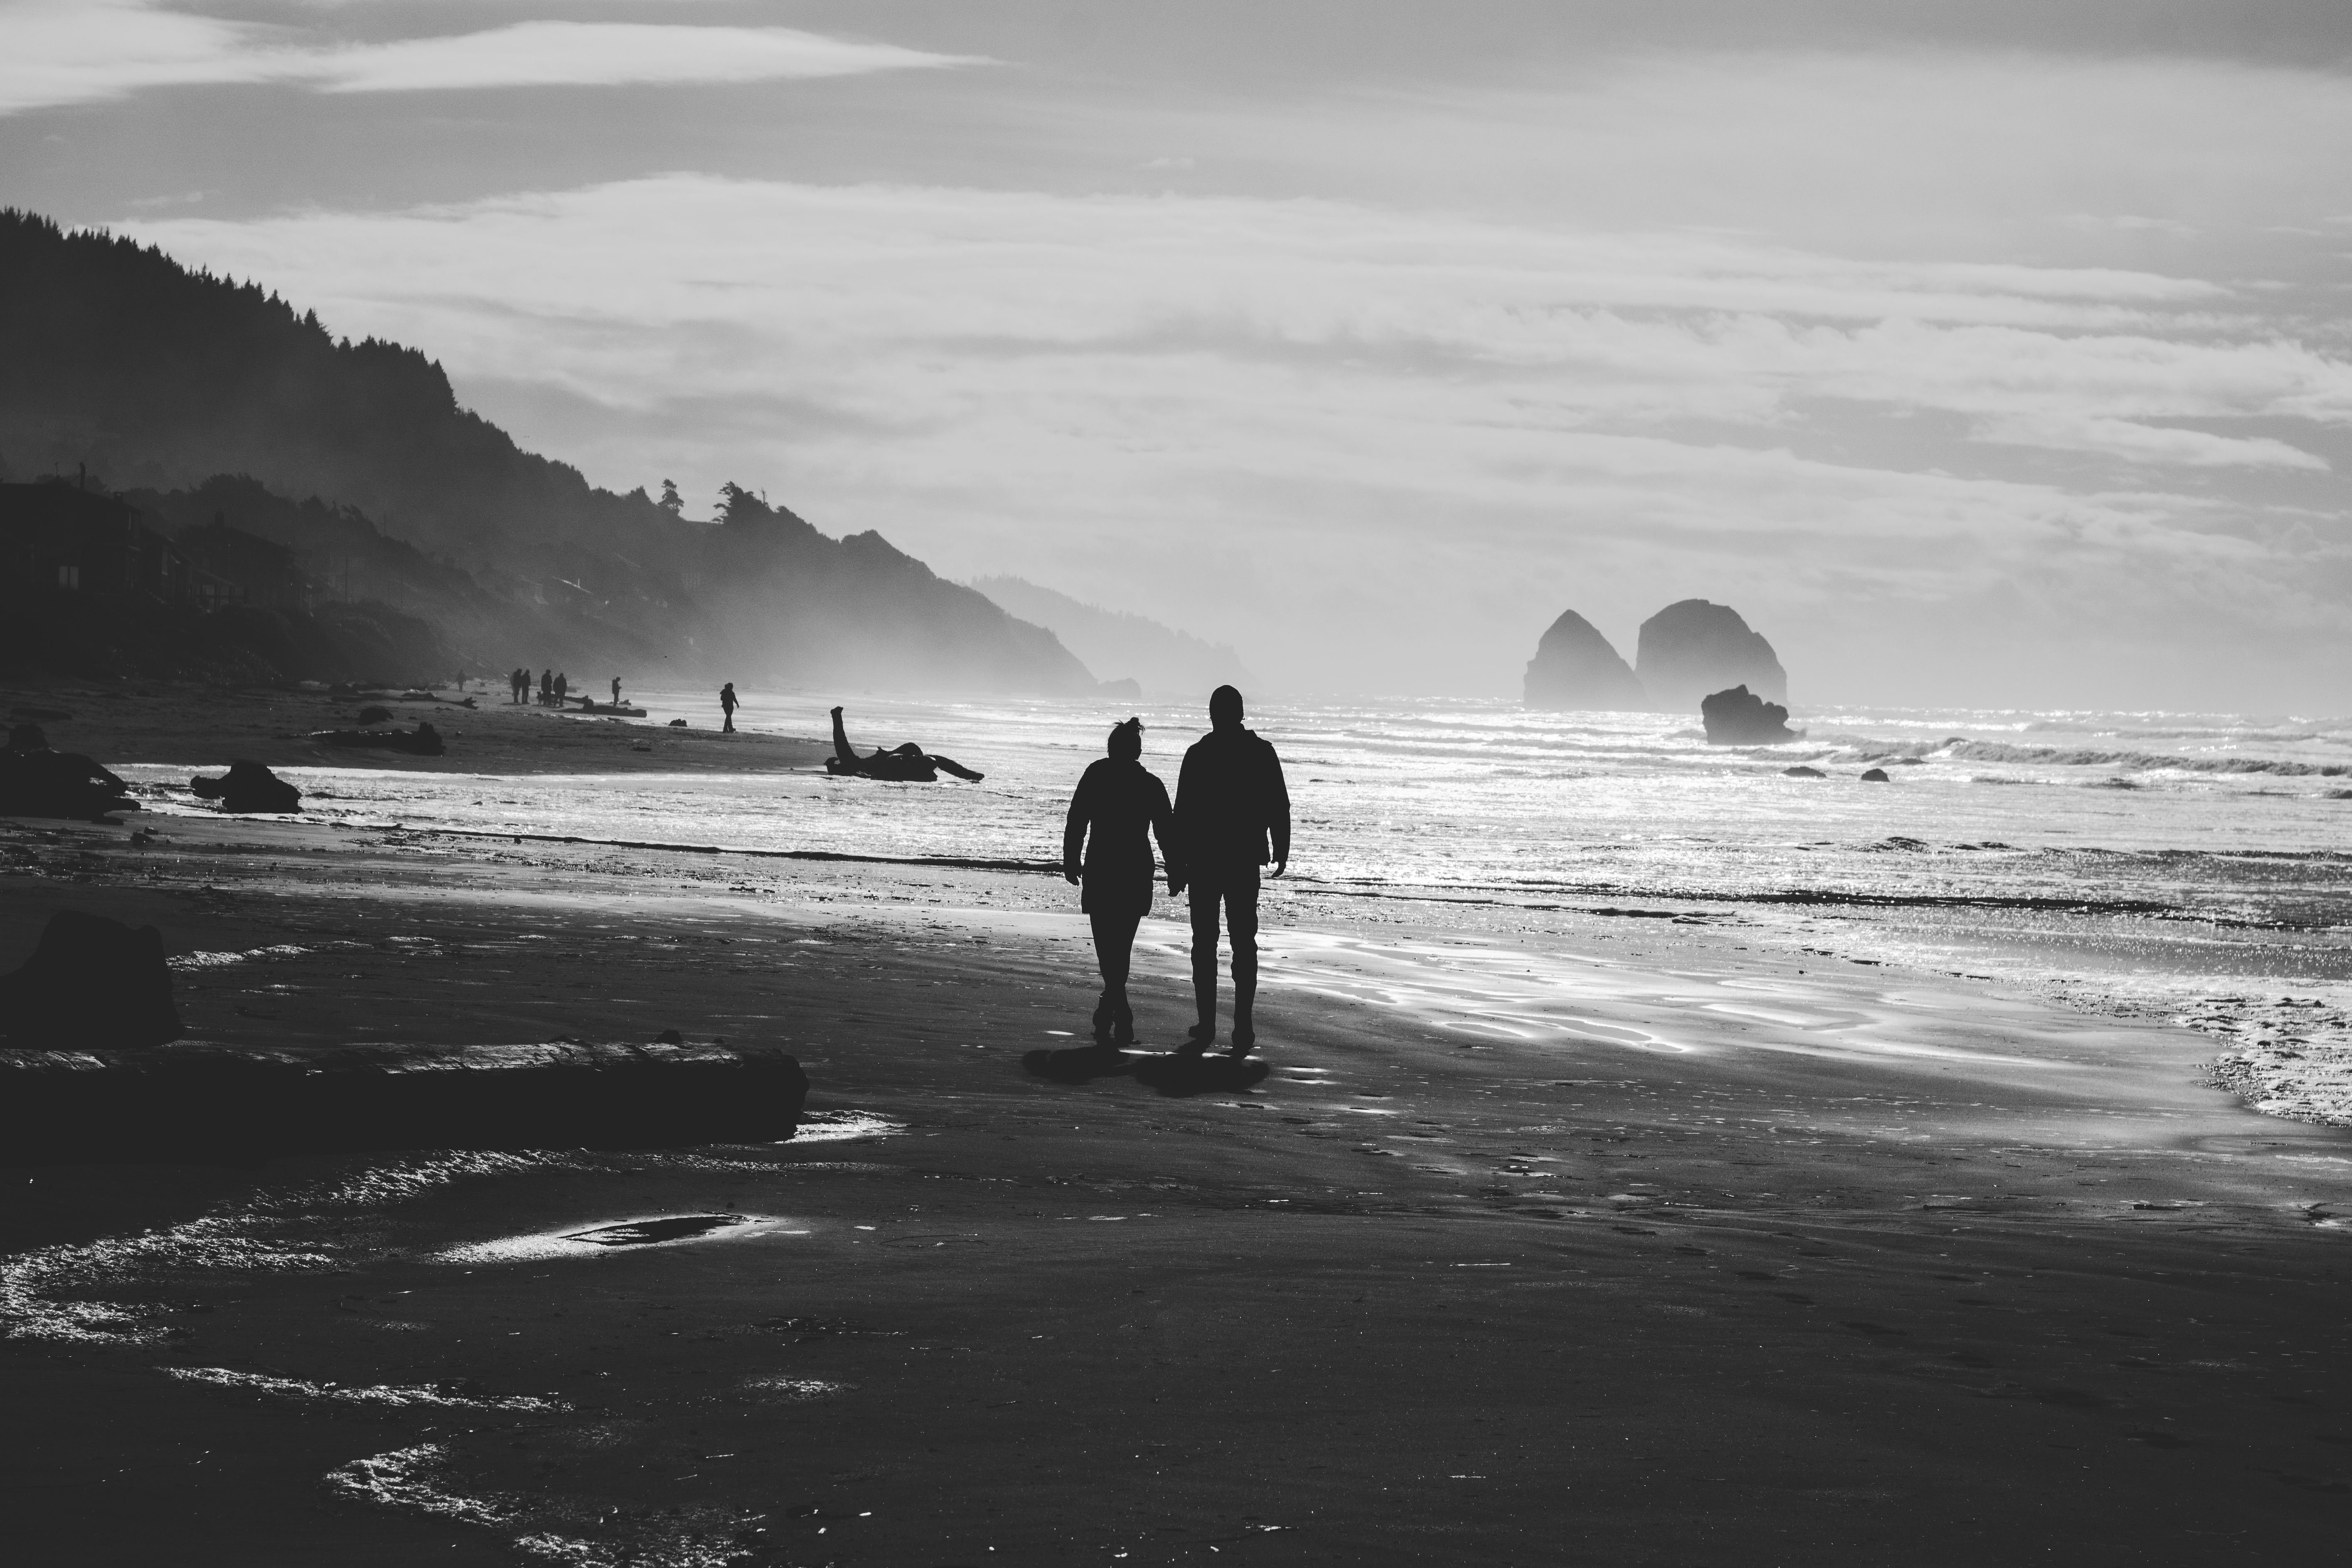 Hearty view of a couple holding hands and enjoying a walk on the beach